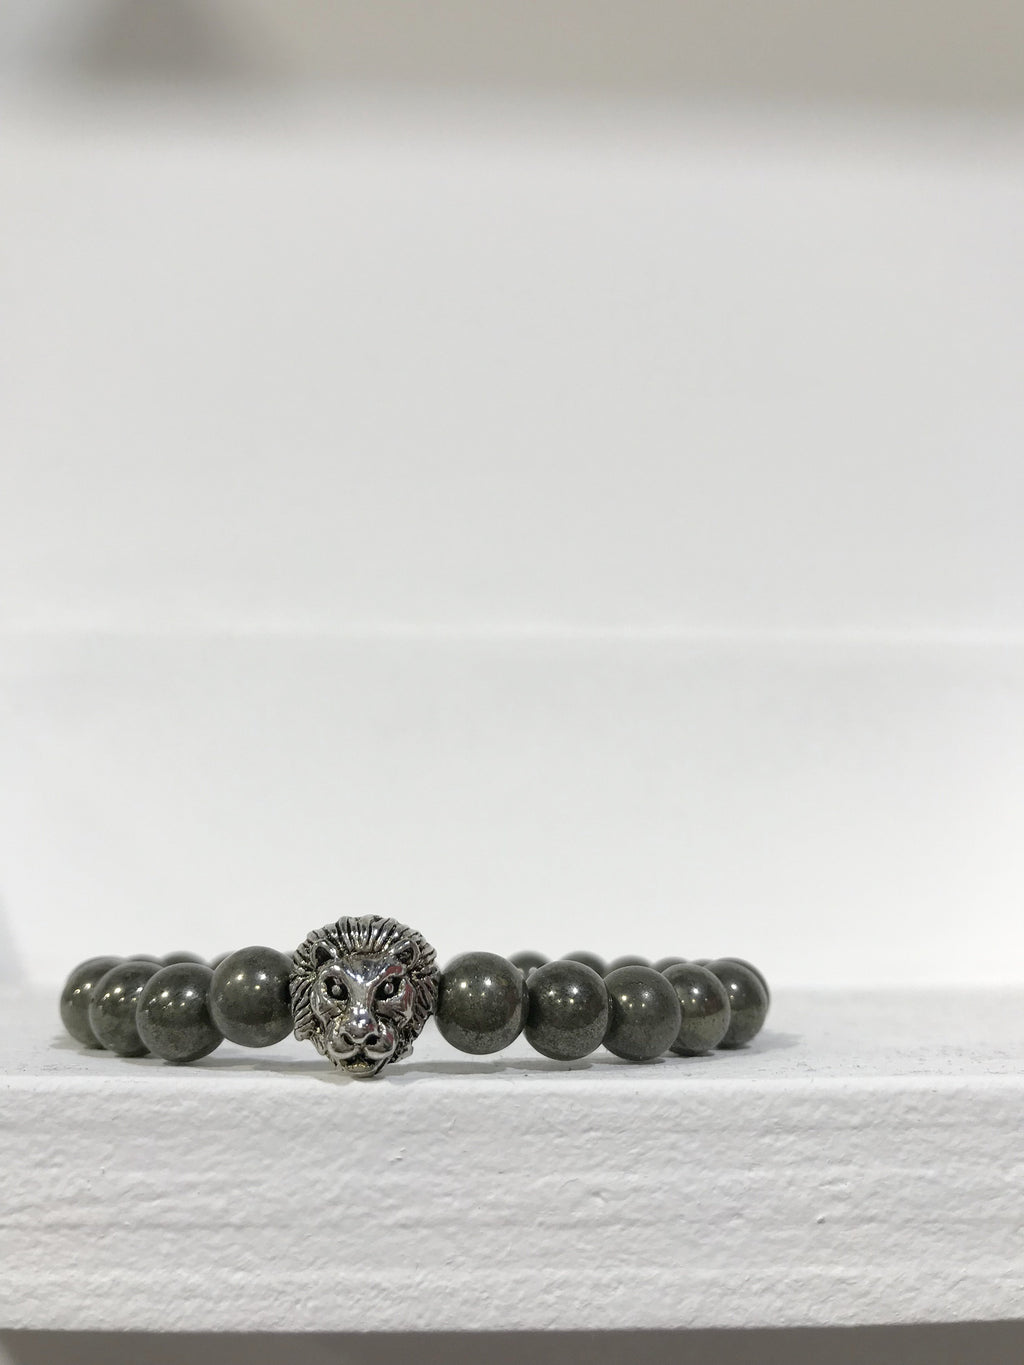 LION COLLEXION Mens Bracelet - Pyrite